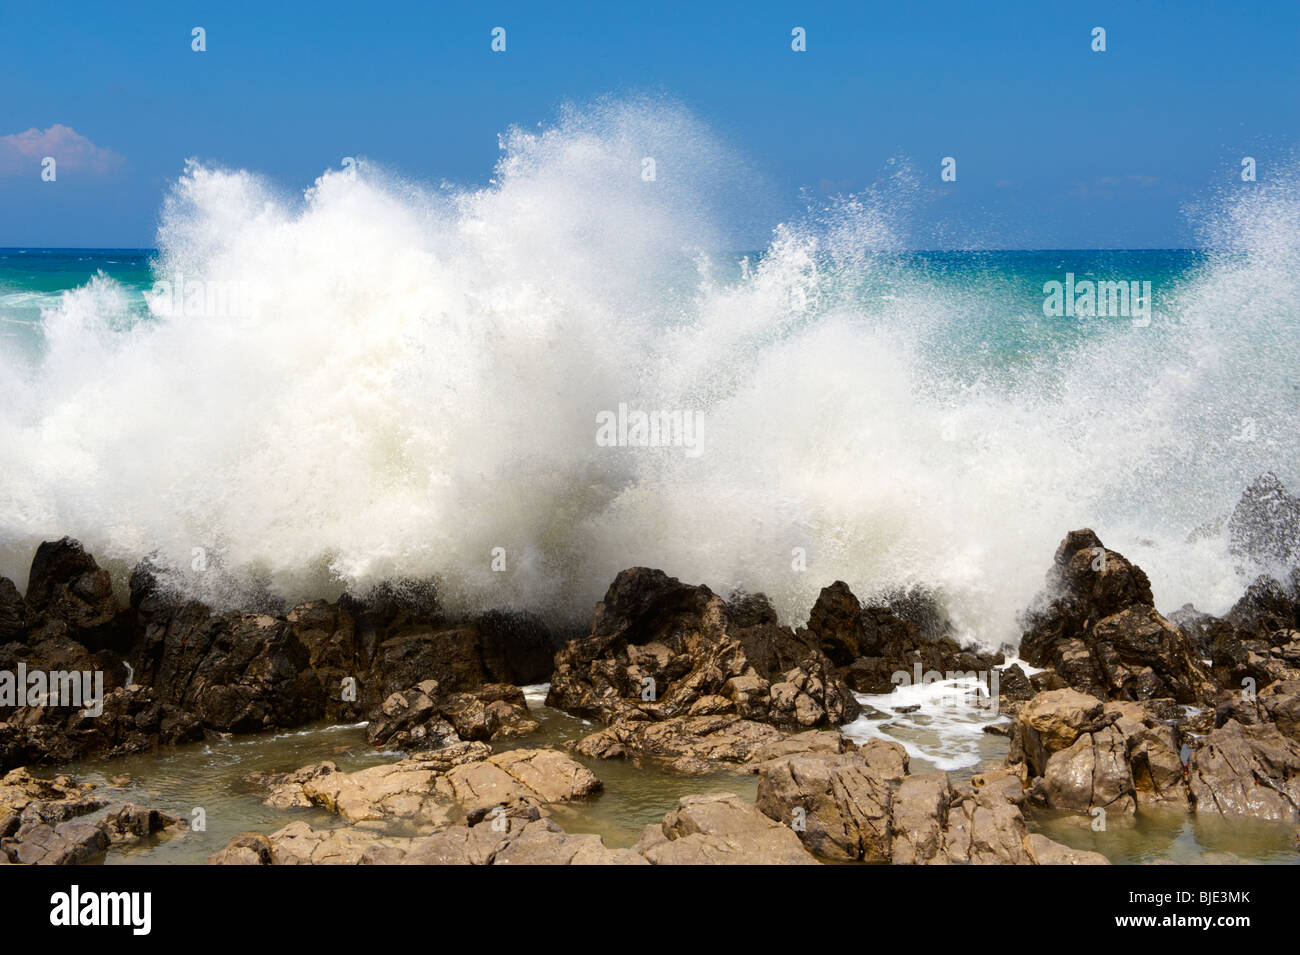 waves crashing on the rocks at Cefalu [Cefaú] Sicily - Stock Image